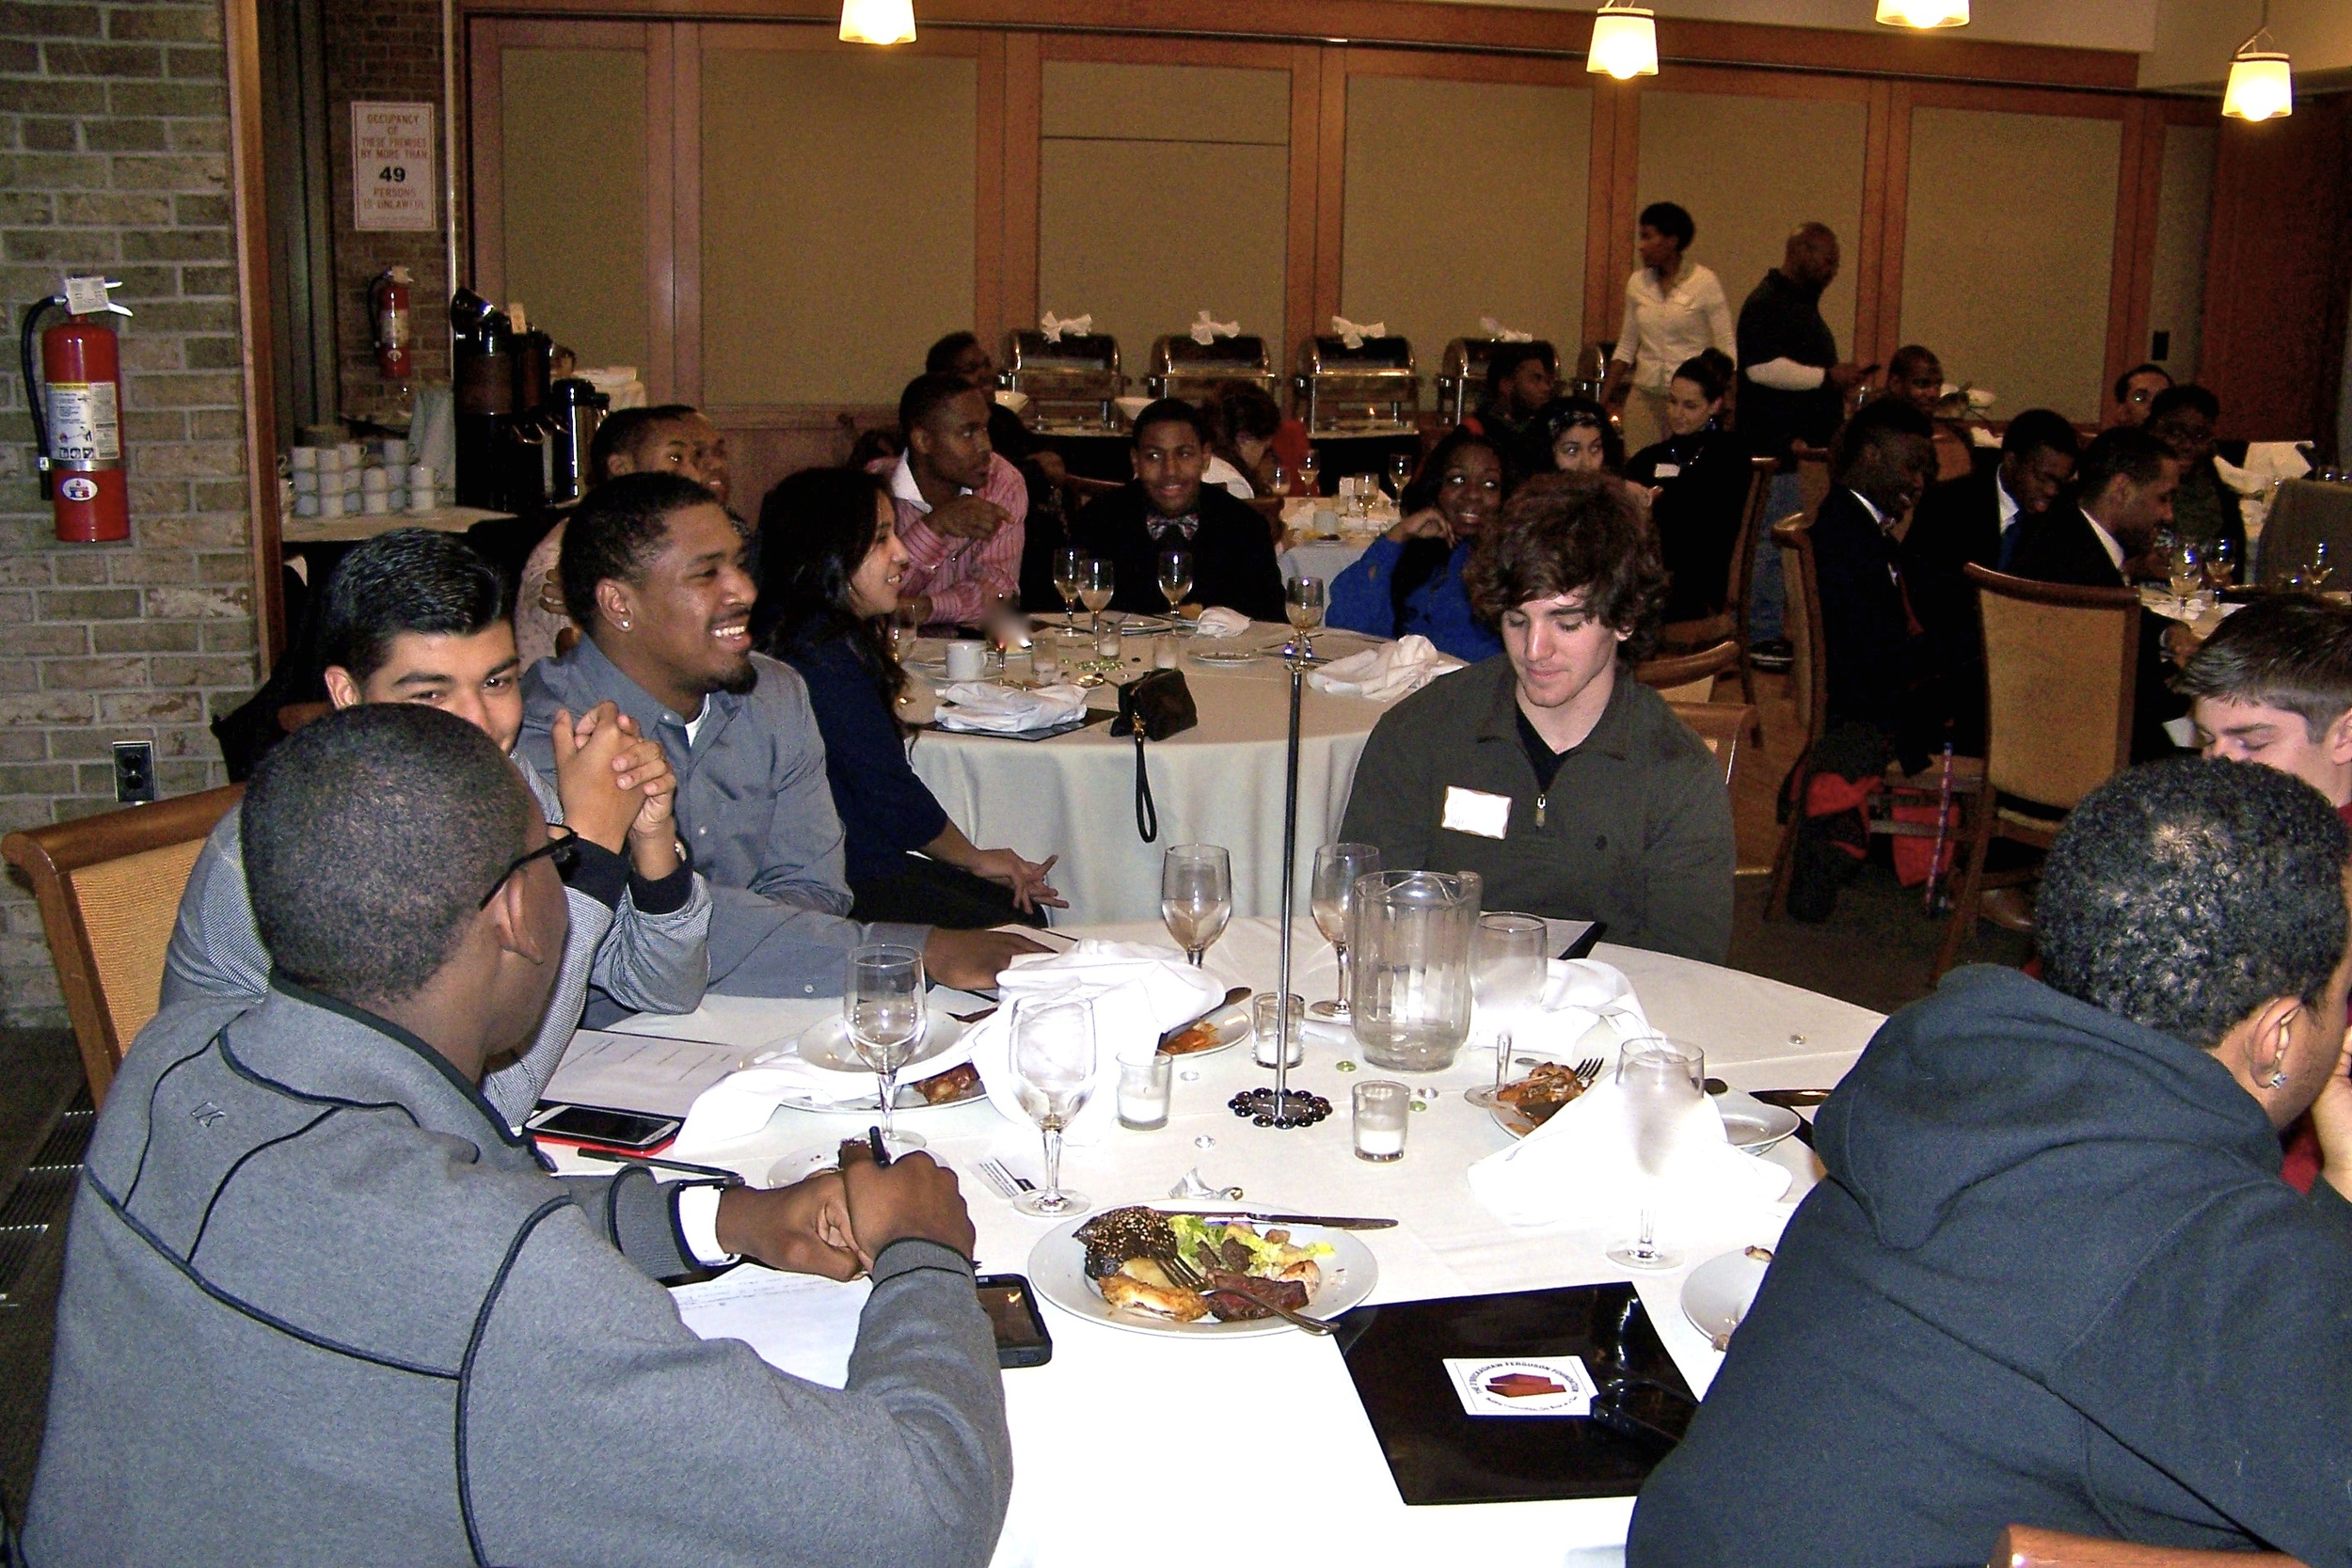 YOUTH-CONFERENCE-1-7-2014 112.JPG